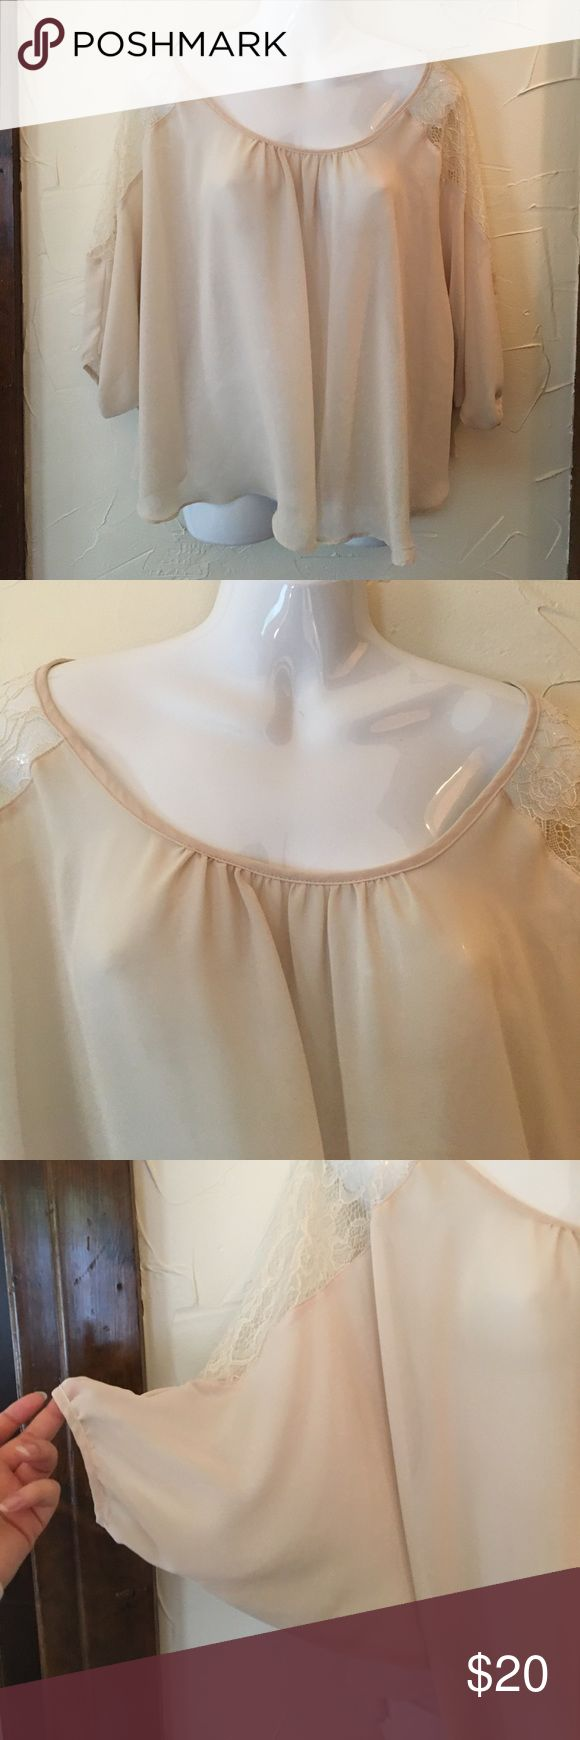 LC Lauren Conrad Sheer Batwing Blouse Cream colored Sheer batwing Blouse from LC Lauren Conrad. Size XS. Is see through. Has Lace on the shoulders. Is lightweight. In good condition. LC Lauren Conrad Tops Blouses